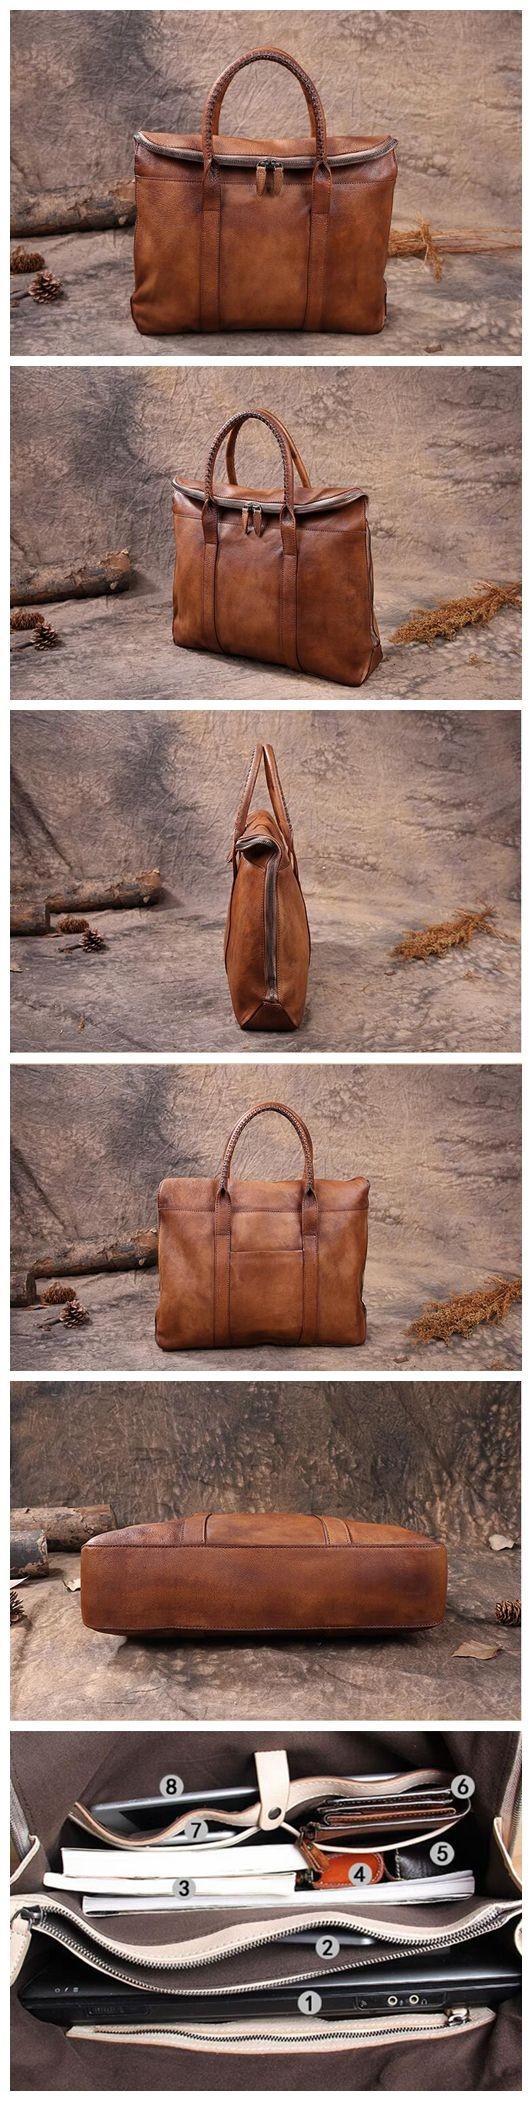 Leather Briefcase Men's Business Bag Handbag Men Fashion Laptop Bag 14118 Overview: Design: Vintage Leather Men Briefcase In Stock: 4-5 days For Making Include: Only Leather Briefcase Custom: No Color